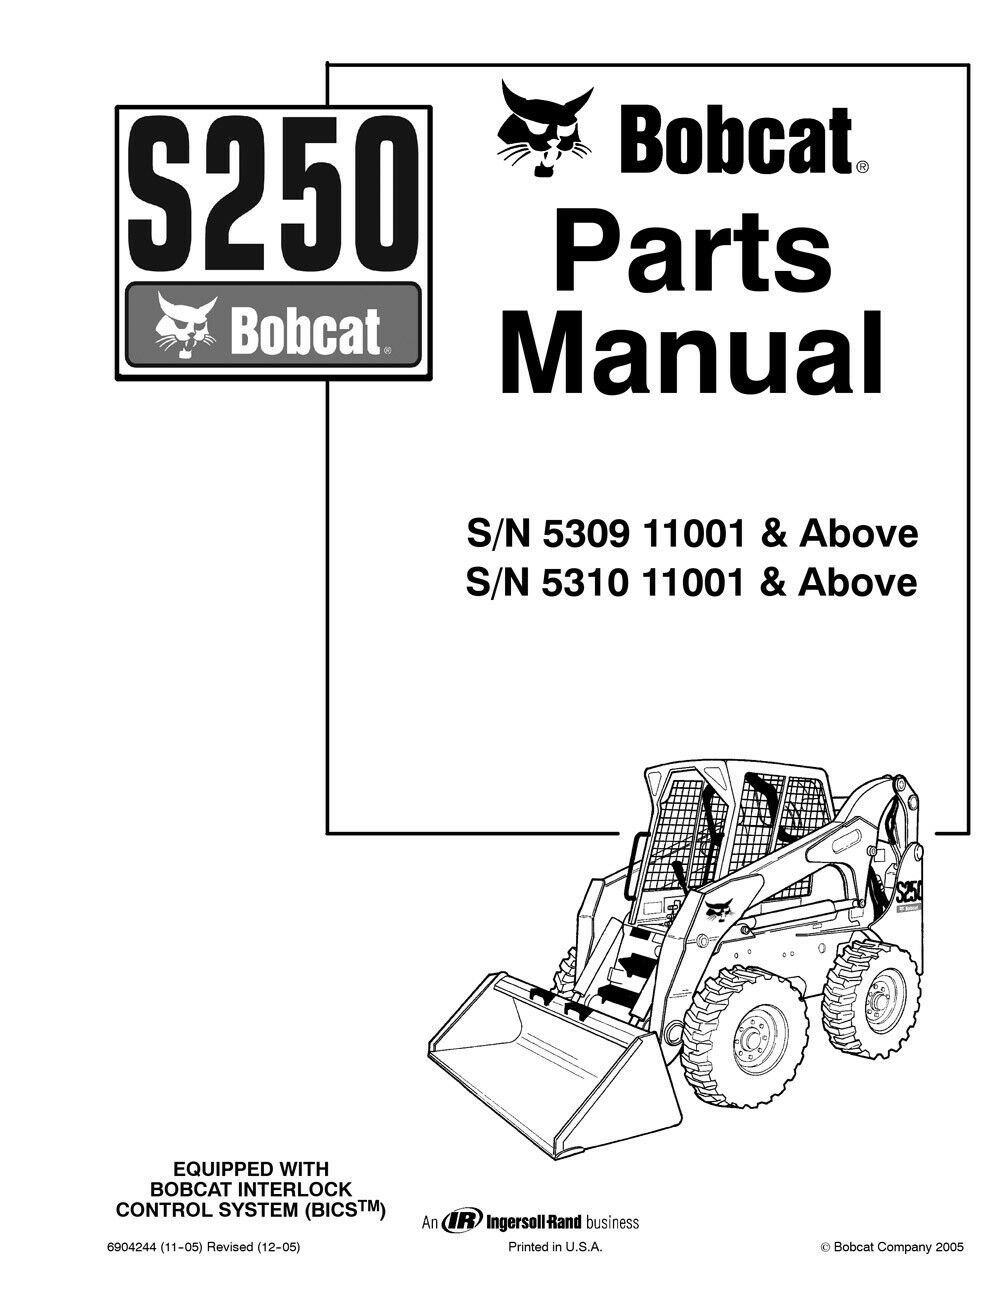 Bobcat 763 Parts Manual Pdf. Diagram. Wiring Diagram Images